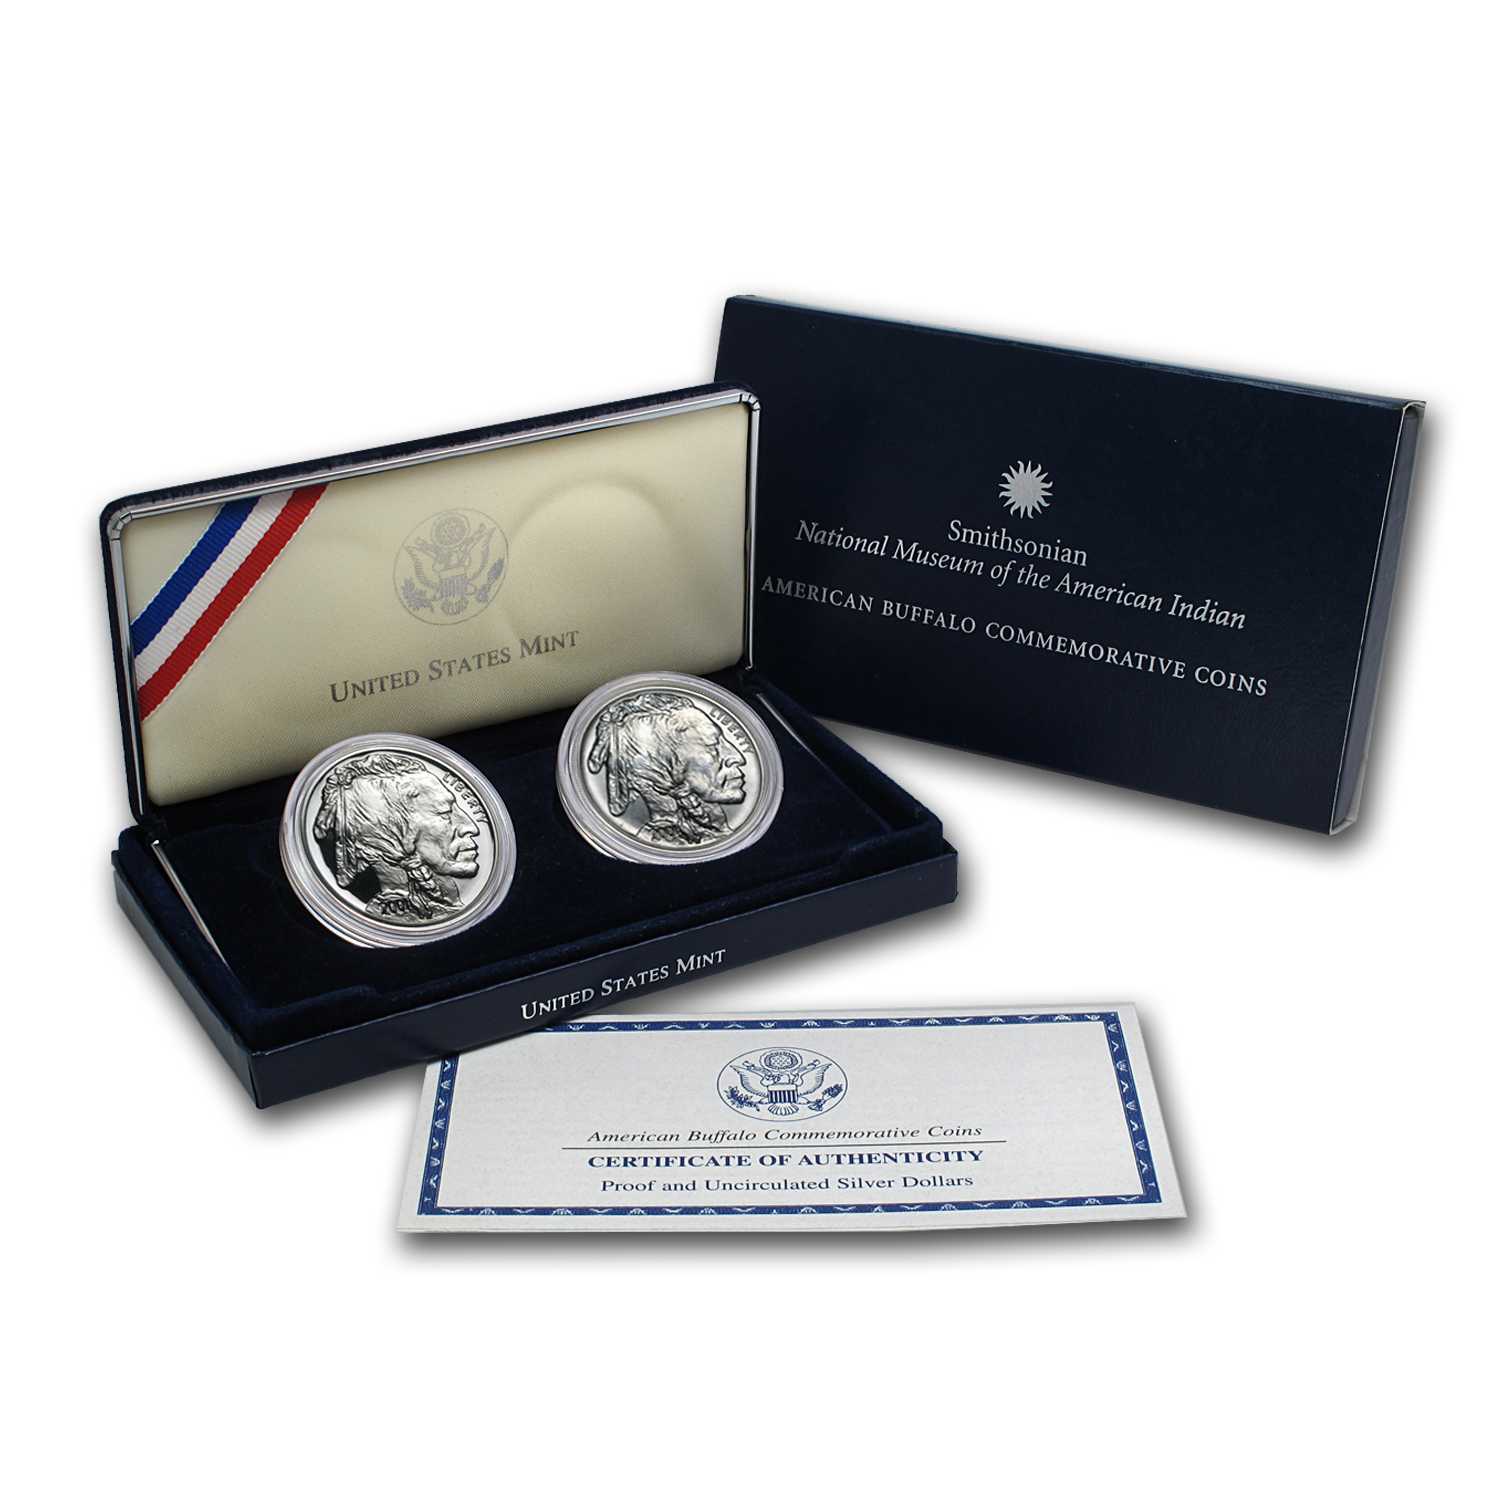 2001 Buffalo - (2 Coin Set) (BU & Proof)